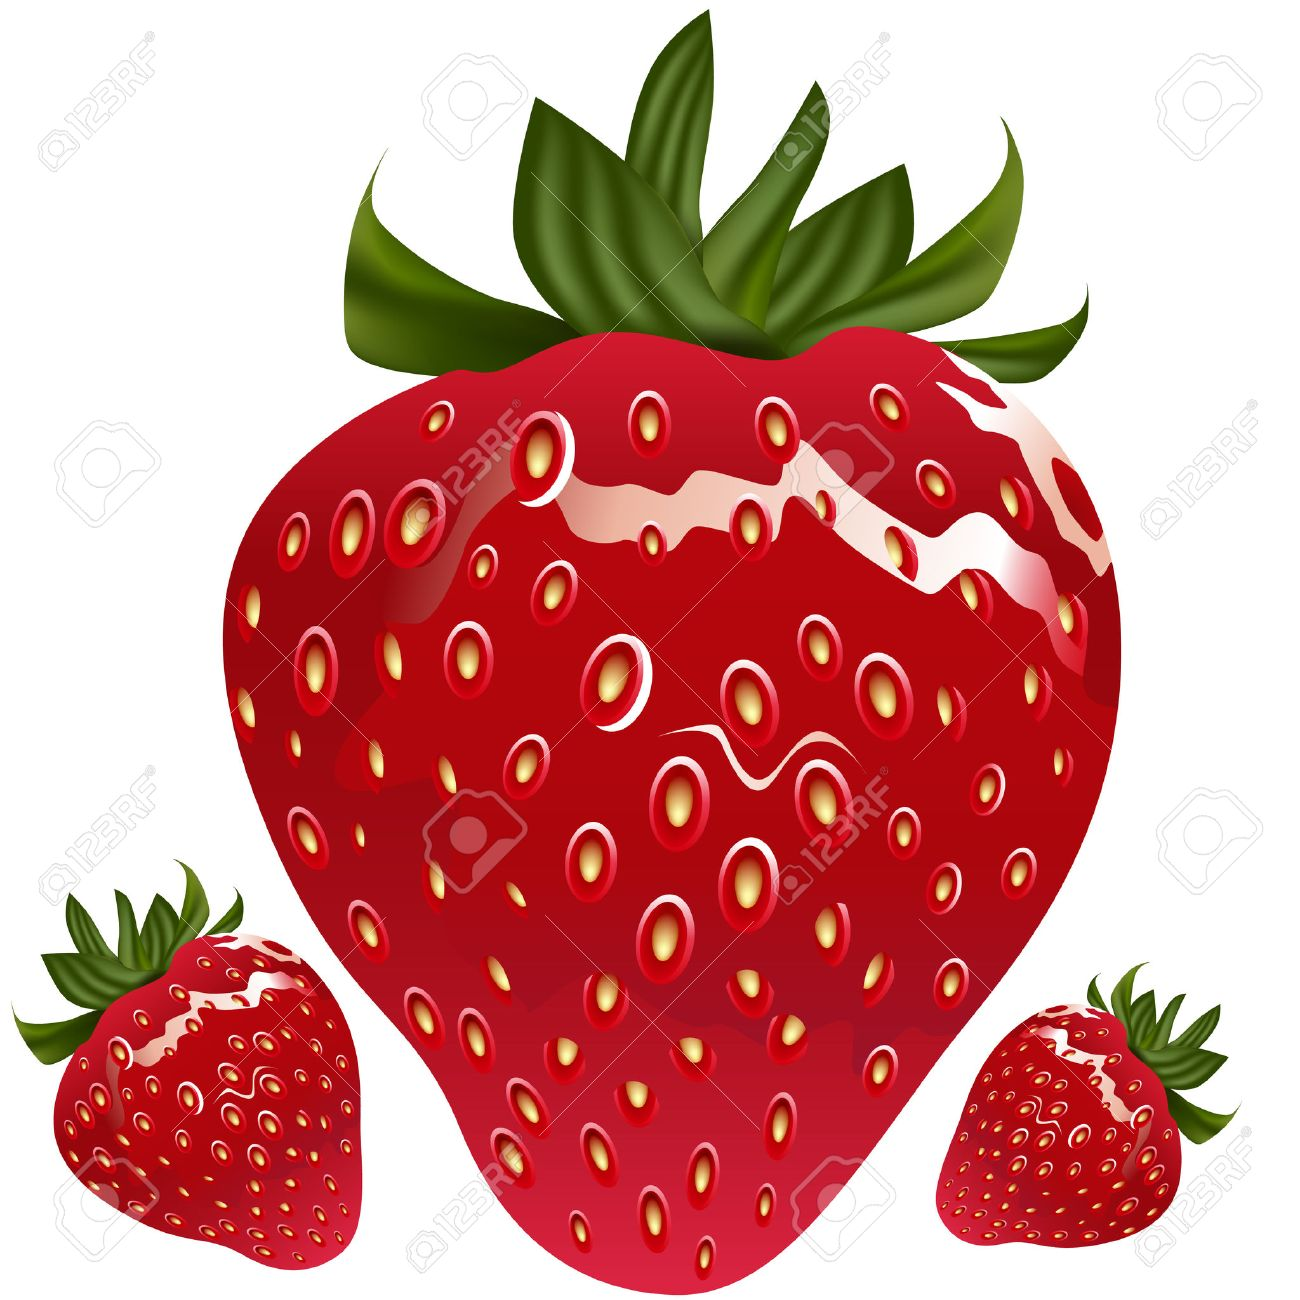 An image of a realistic strawberry. - 7684960